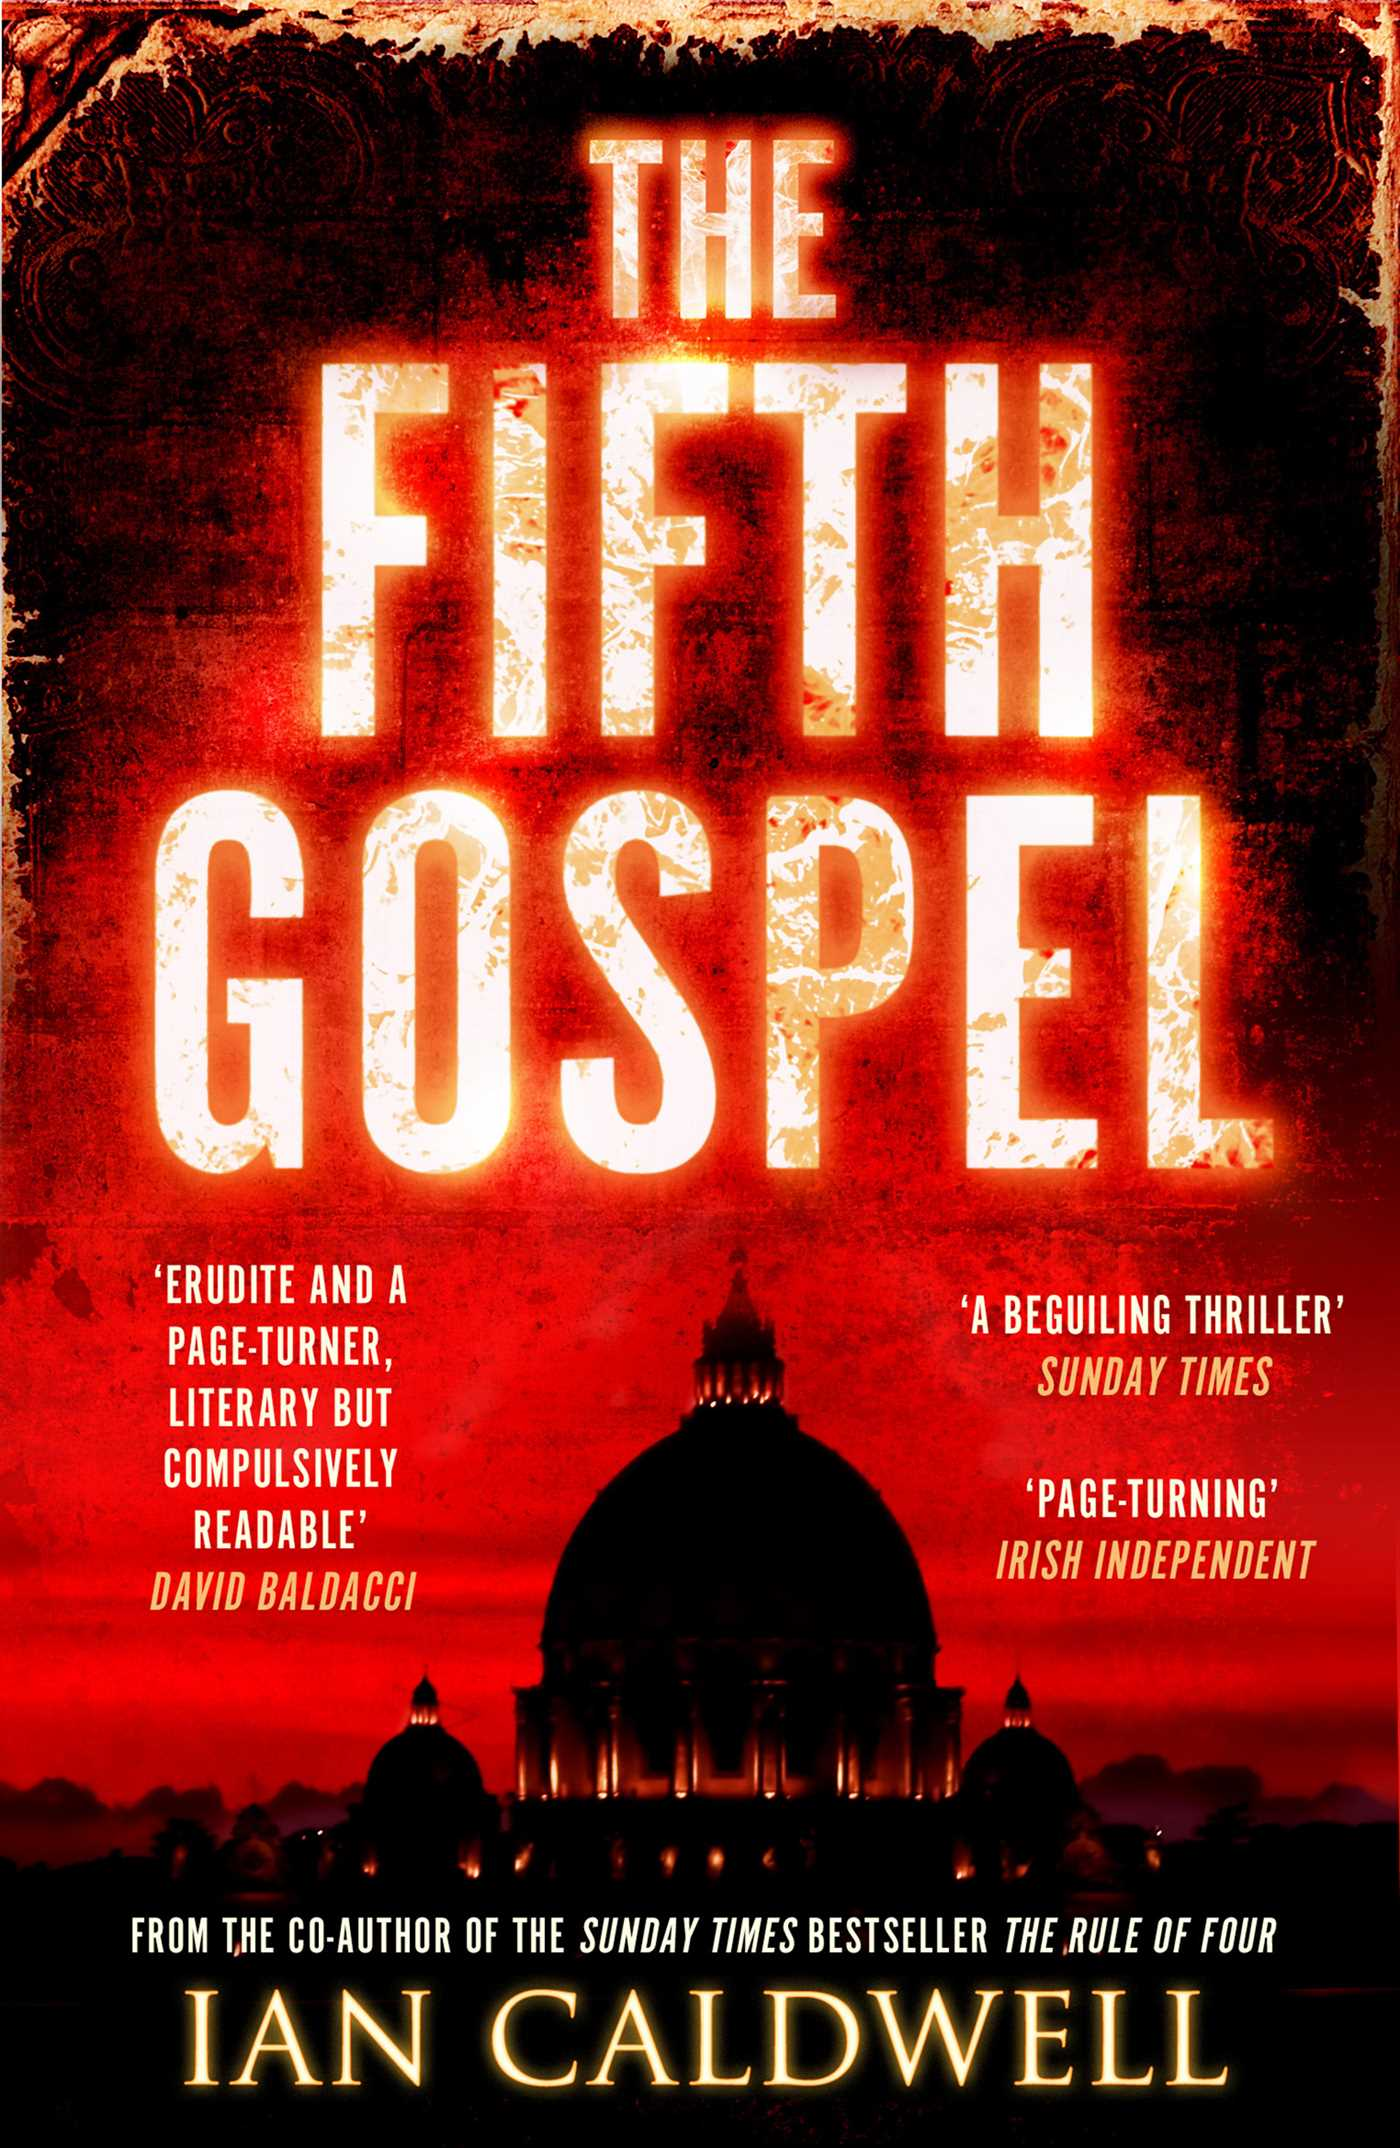 The fifth gospel 9781471111044 hr